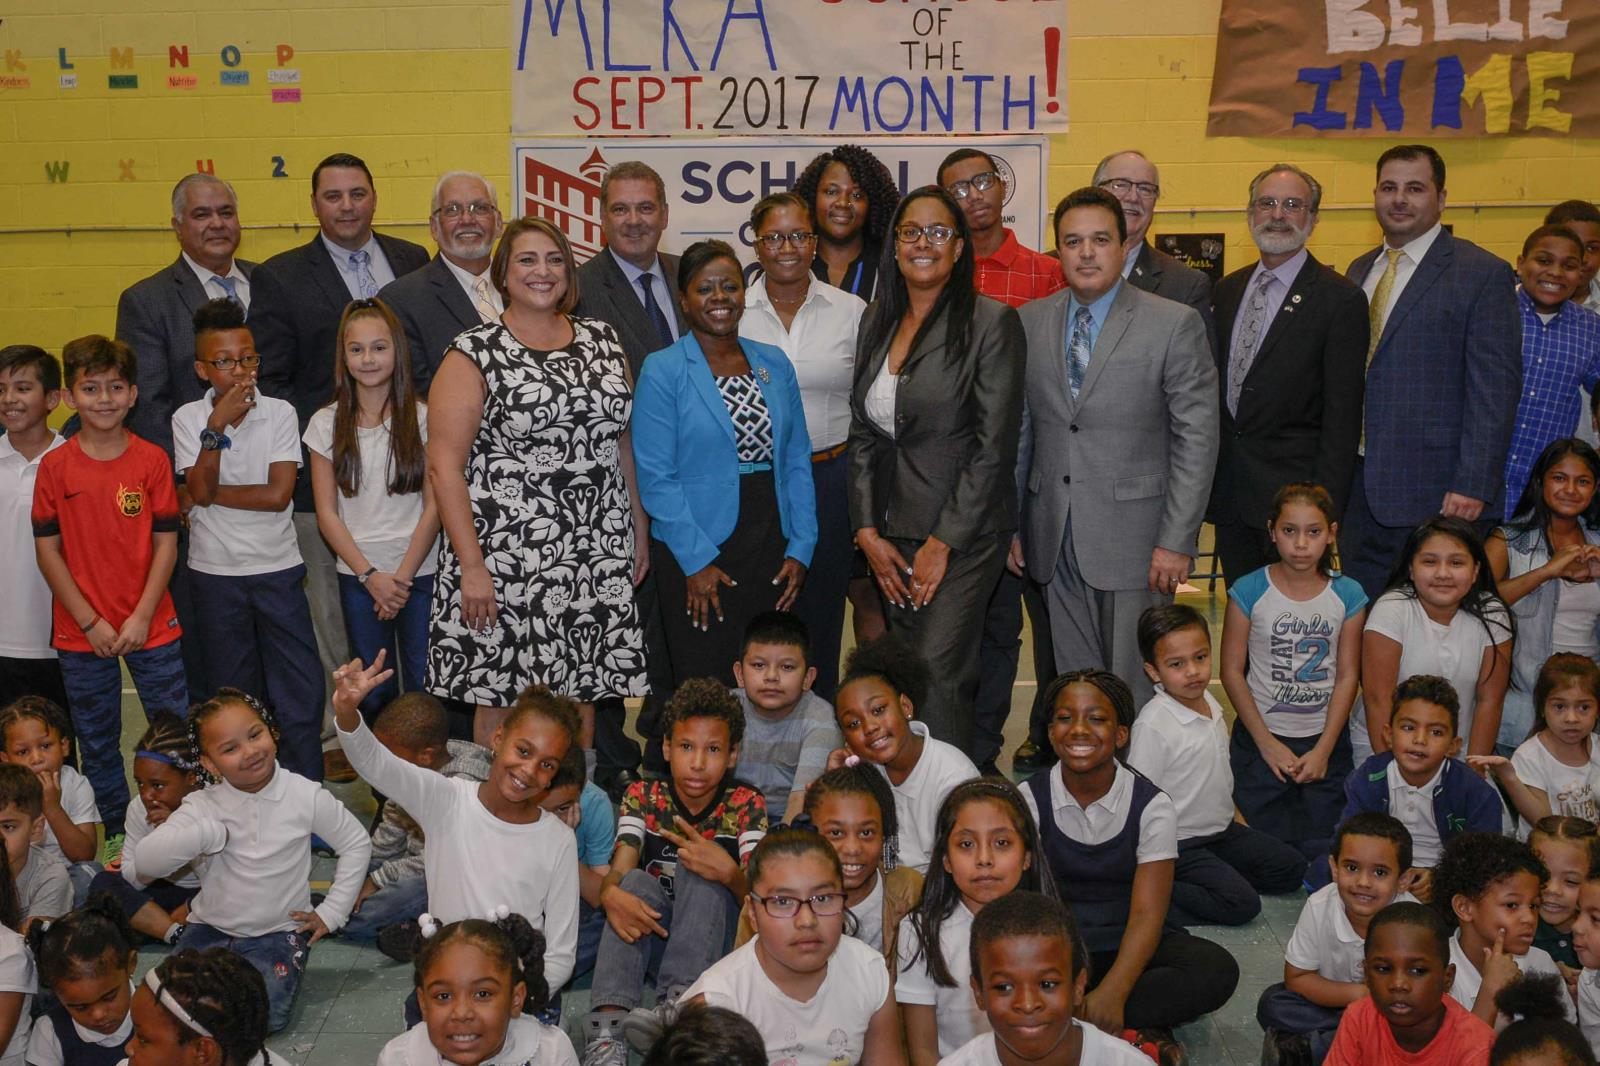 Mayor Spano Presents Martin Luther King, Jr. Academy with September 2017 School of the Month Award